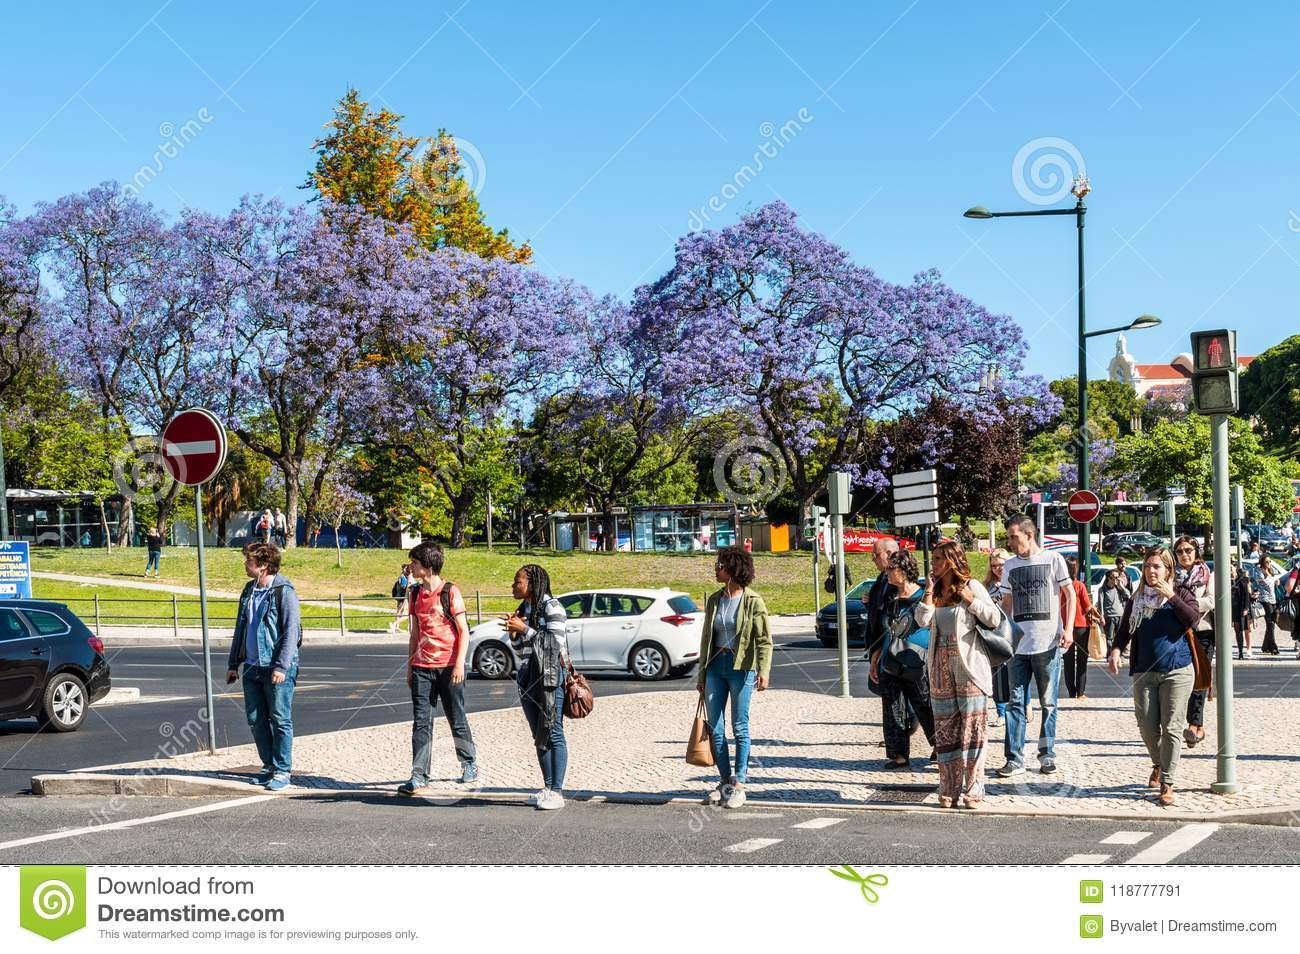 People on the pedestrian crossing in Lisbon, Portugal